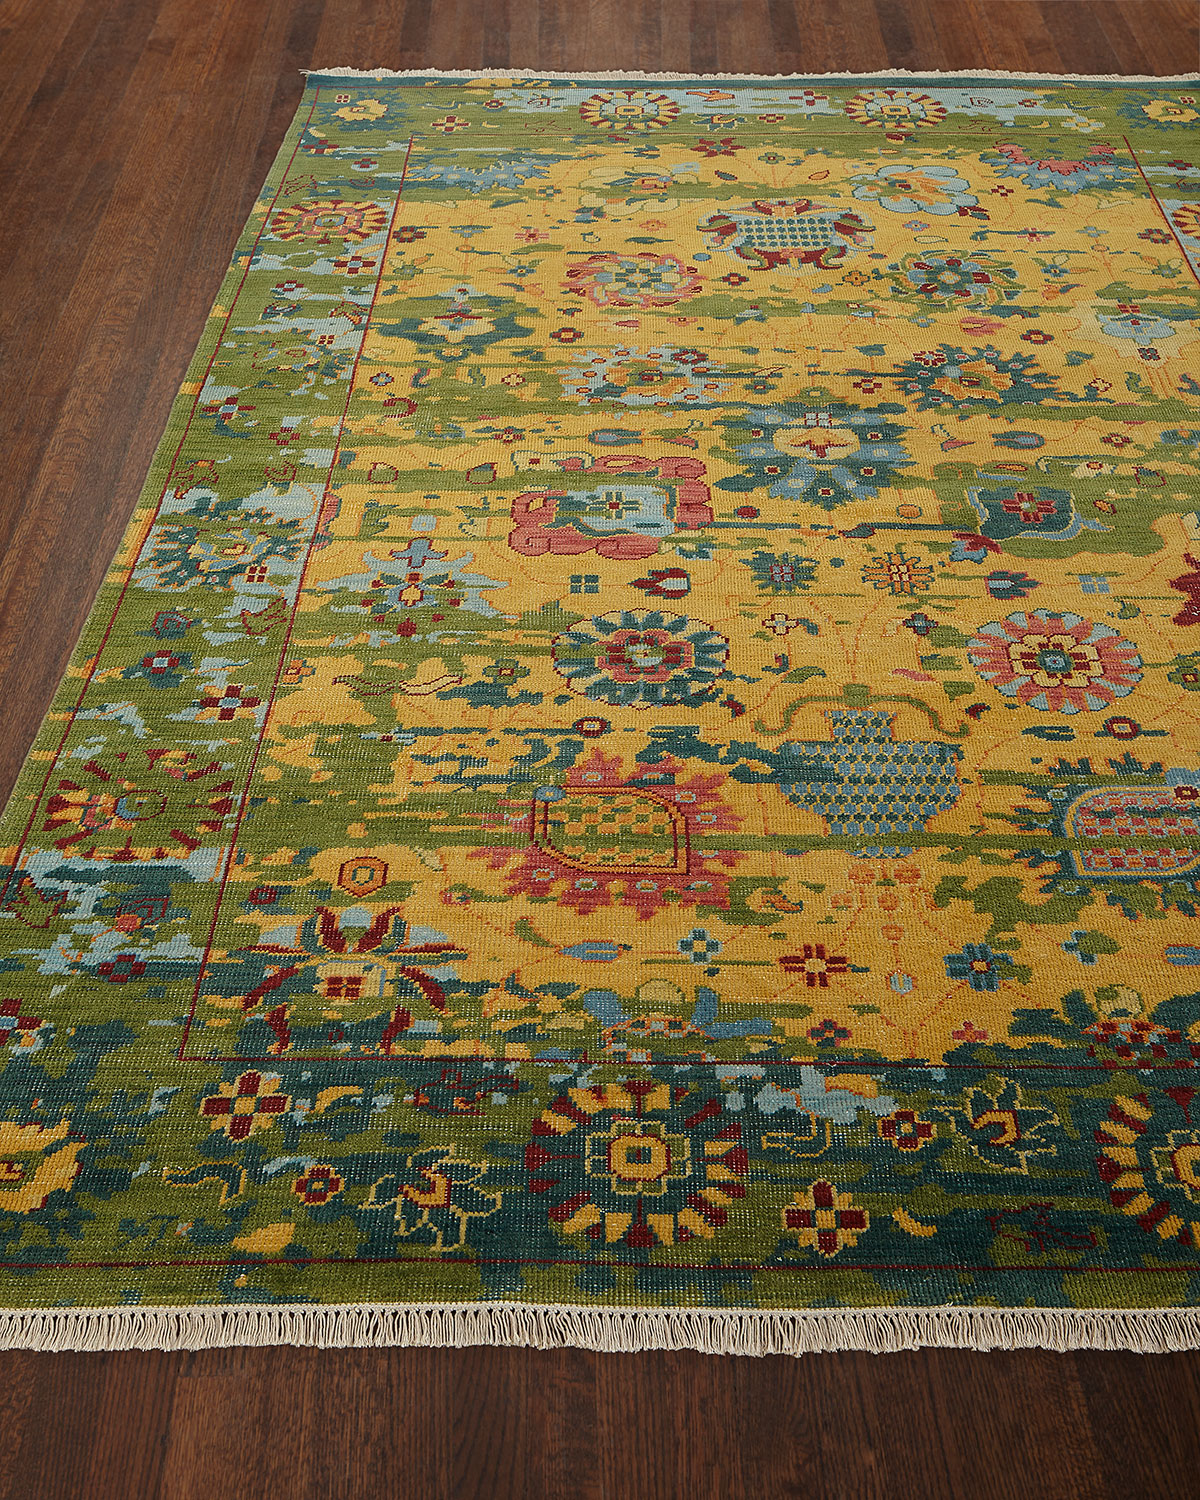 Eden Hand-Knotted Wool Rug, 9' x 13